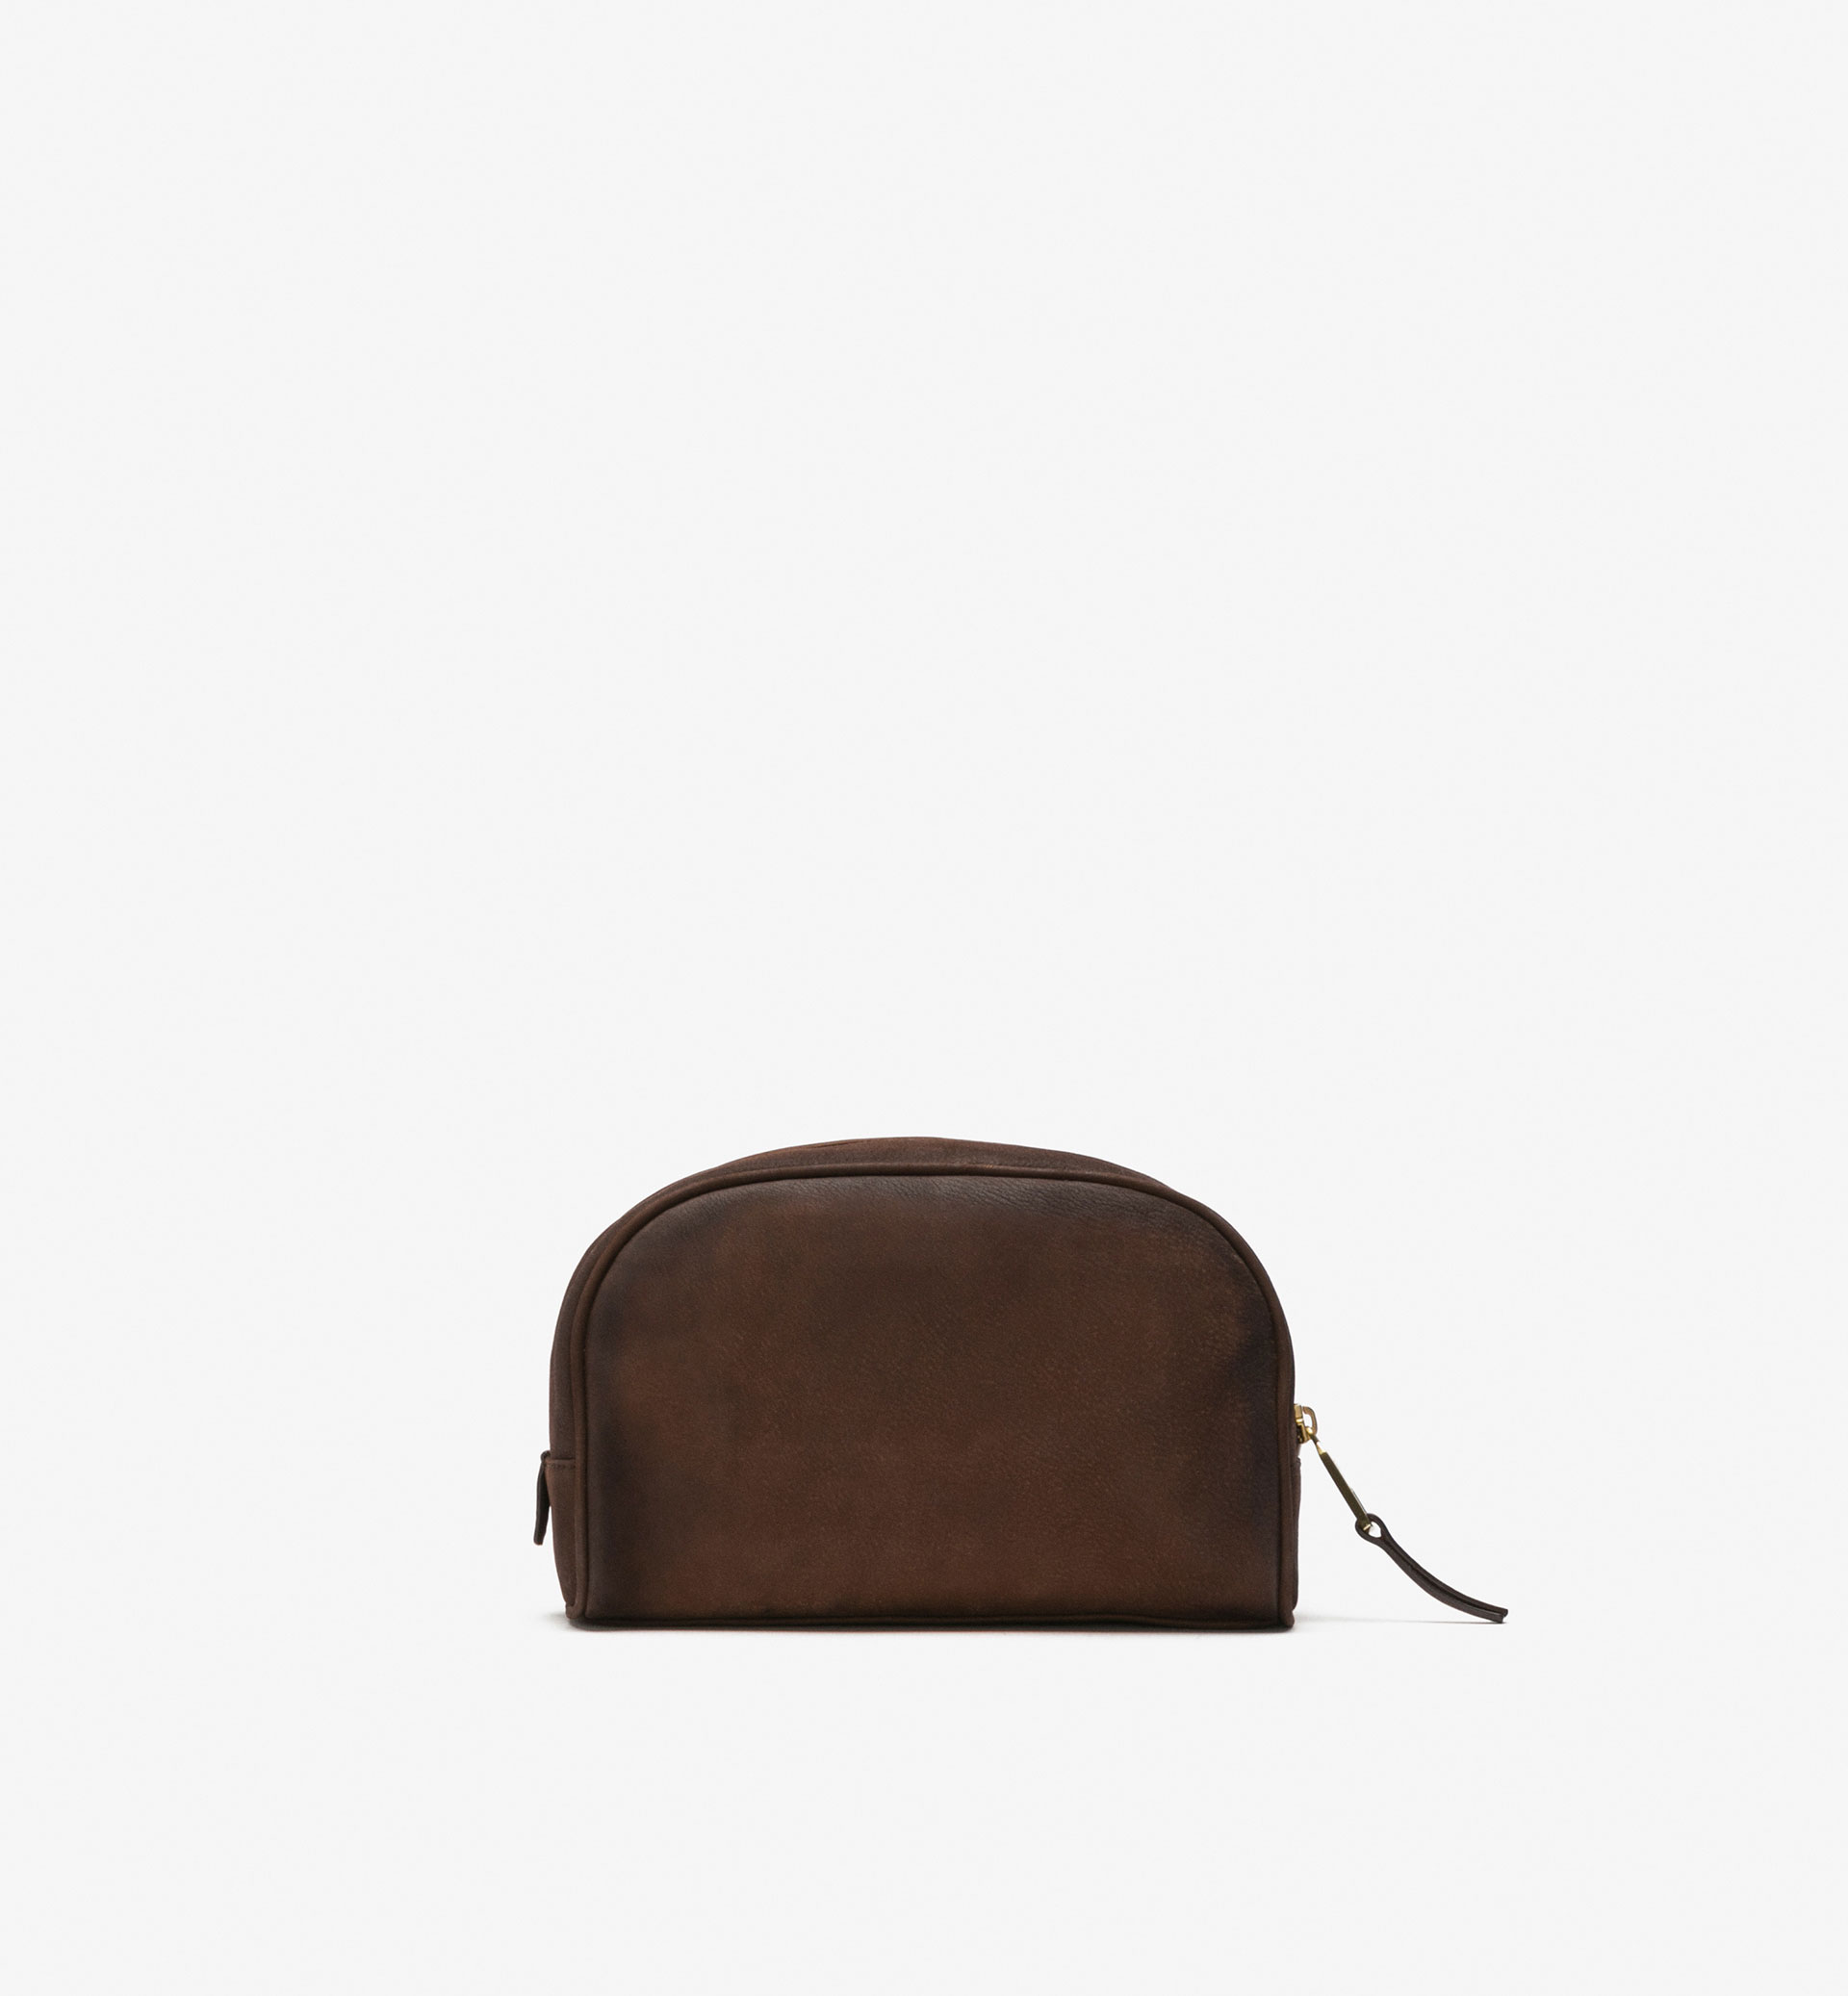 BROWN NUBUCK TOILETRY BAG